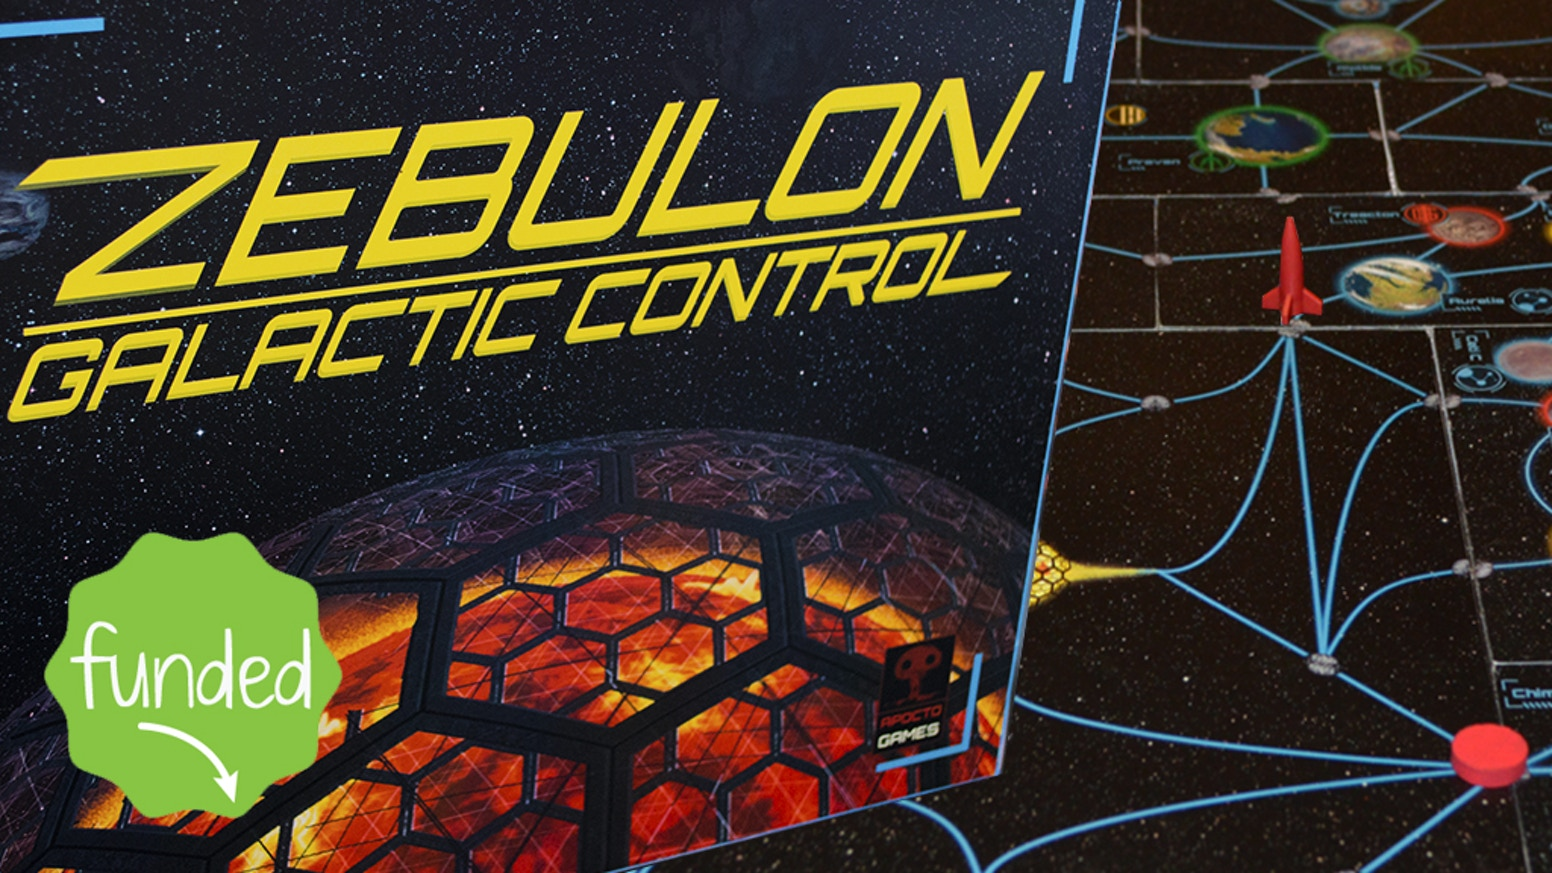 Zebulon is a space themed, modular strategic board game. Complete missions, lay traps and confront other players in battle.